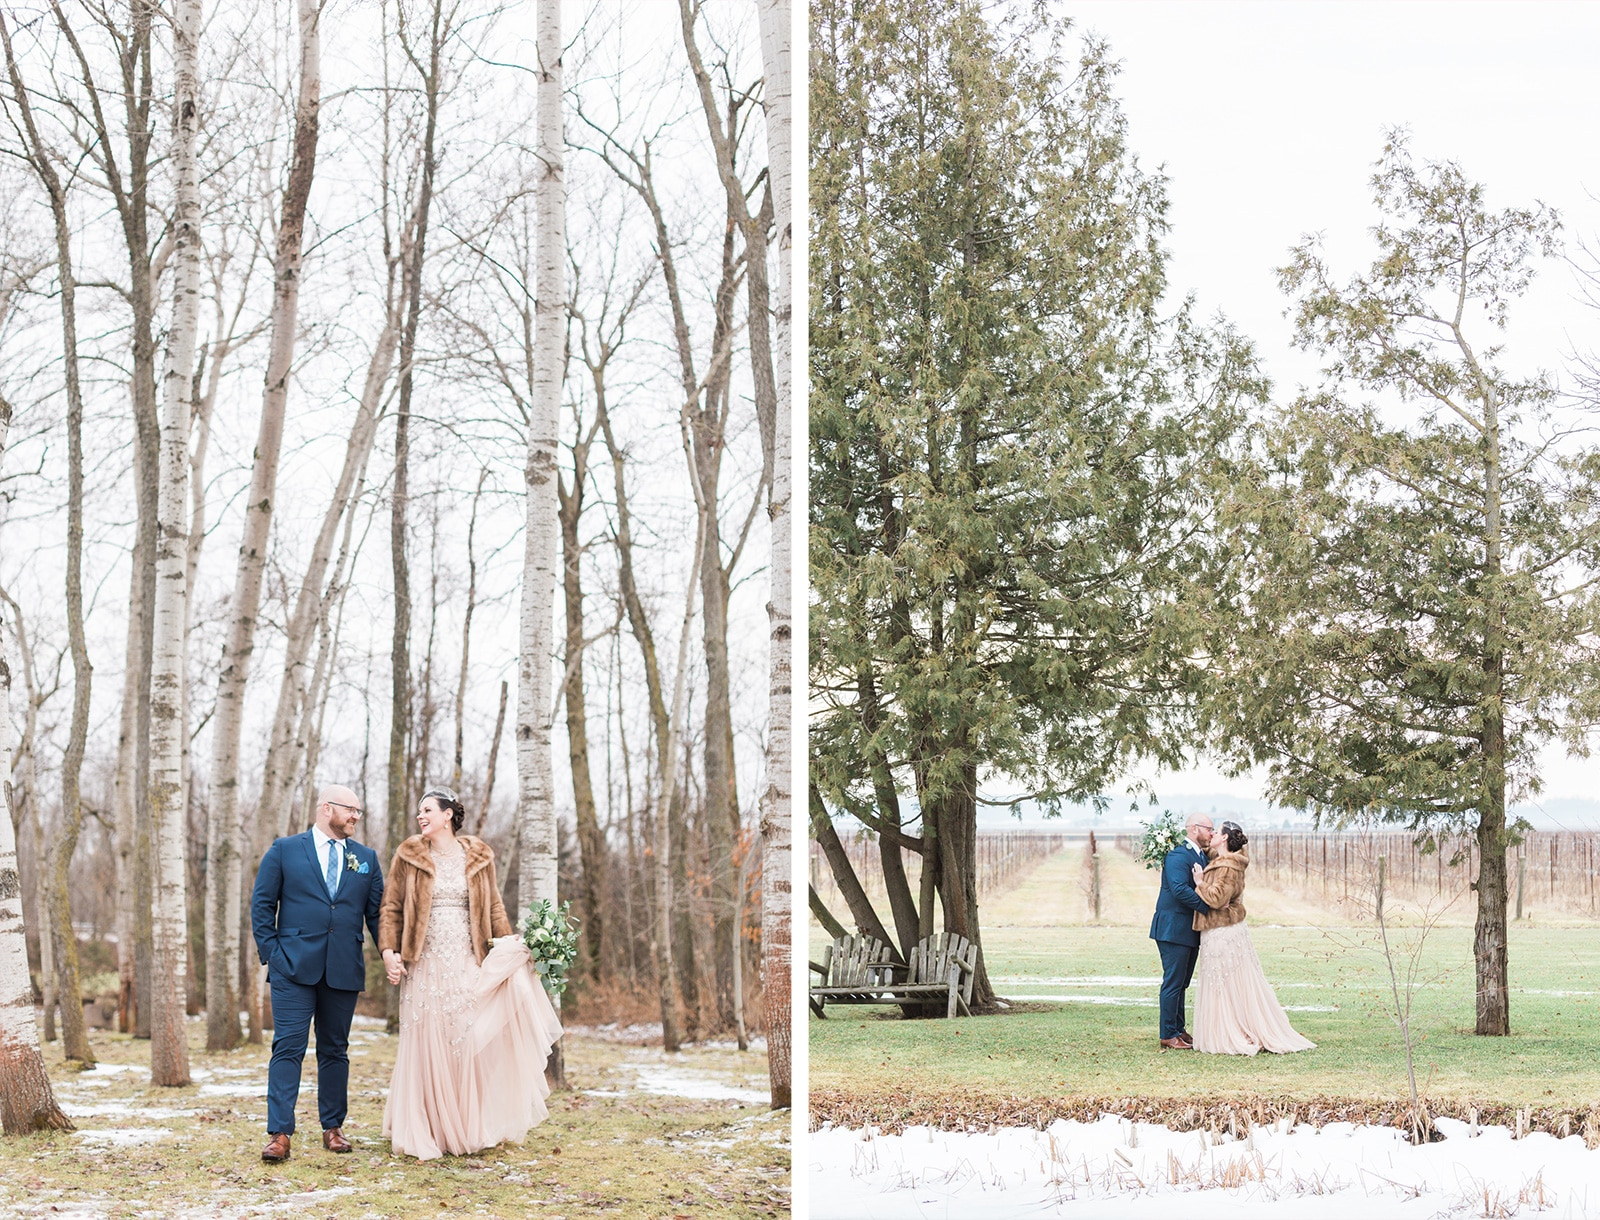 Holland Marsh Winter Wedding: Ingrid + Ryan